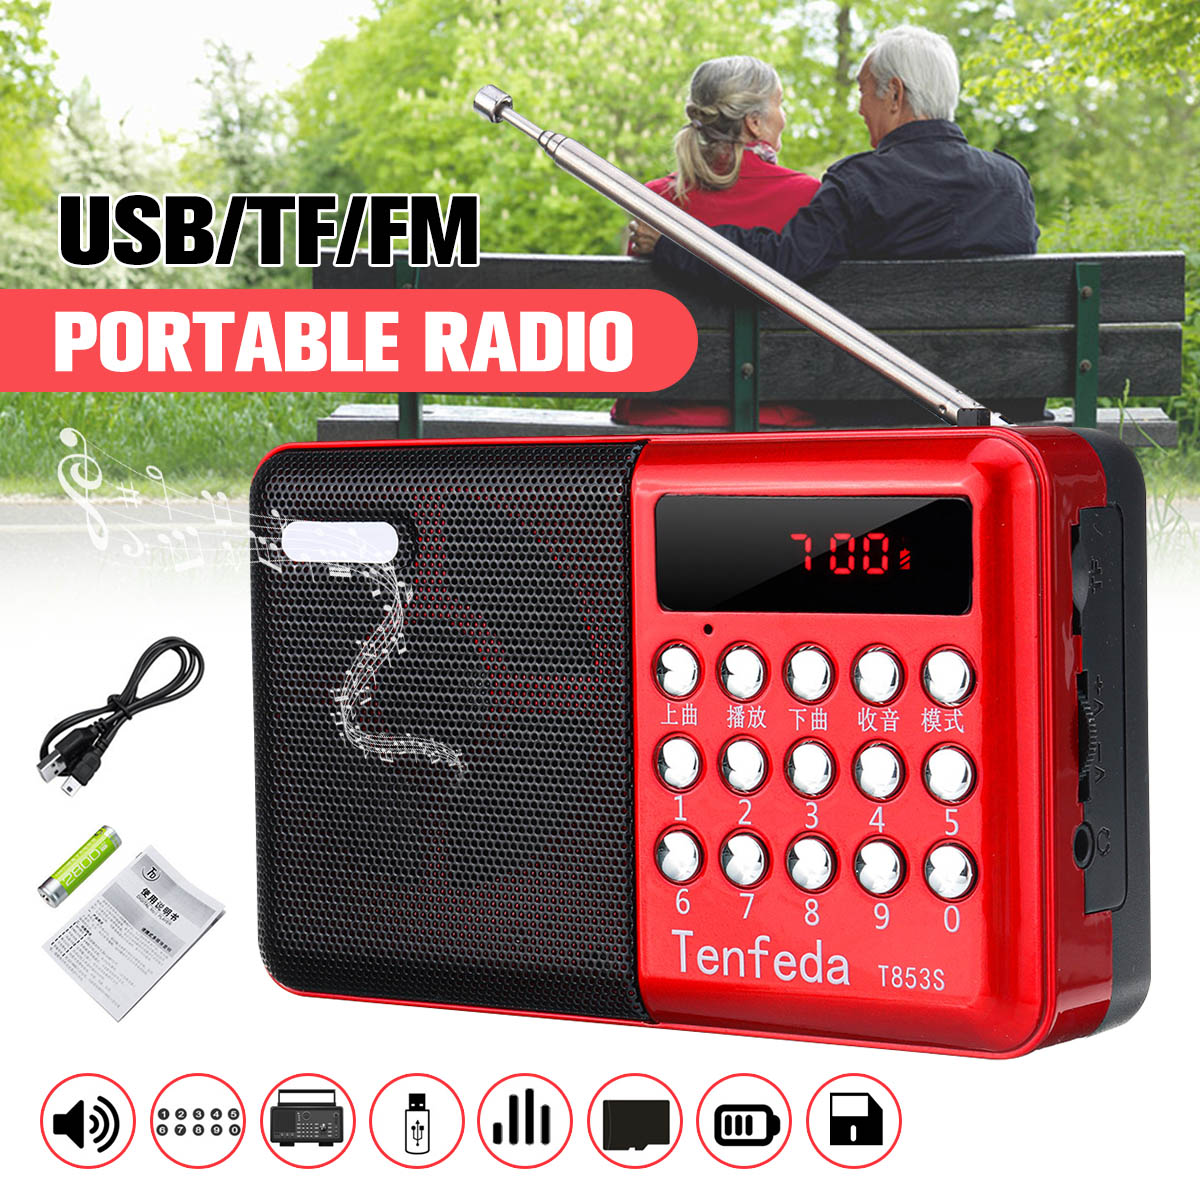 Mini Portable Radio Handheld Digital FM USB TF MP3 Player Speaker Rechargeable -off memory function LED Display red